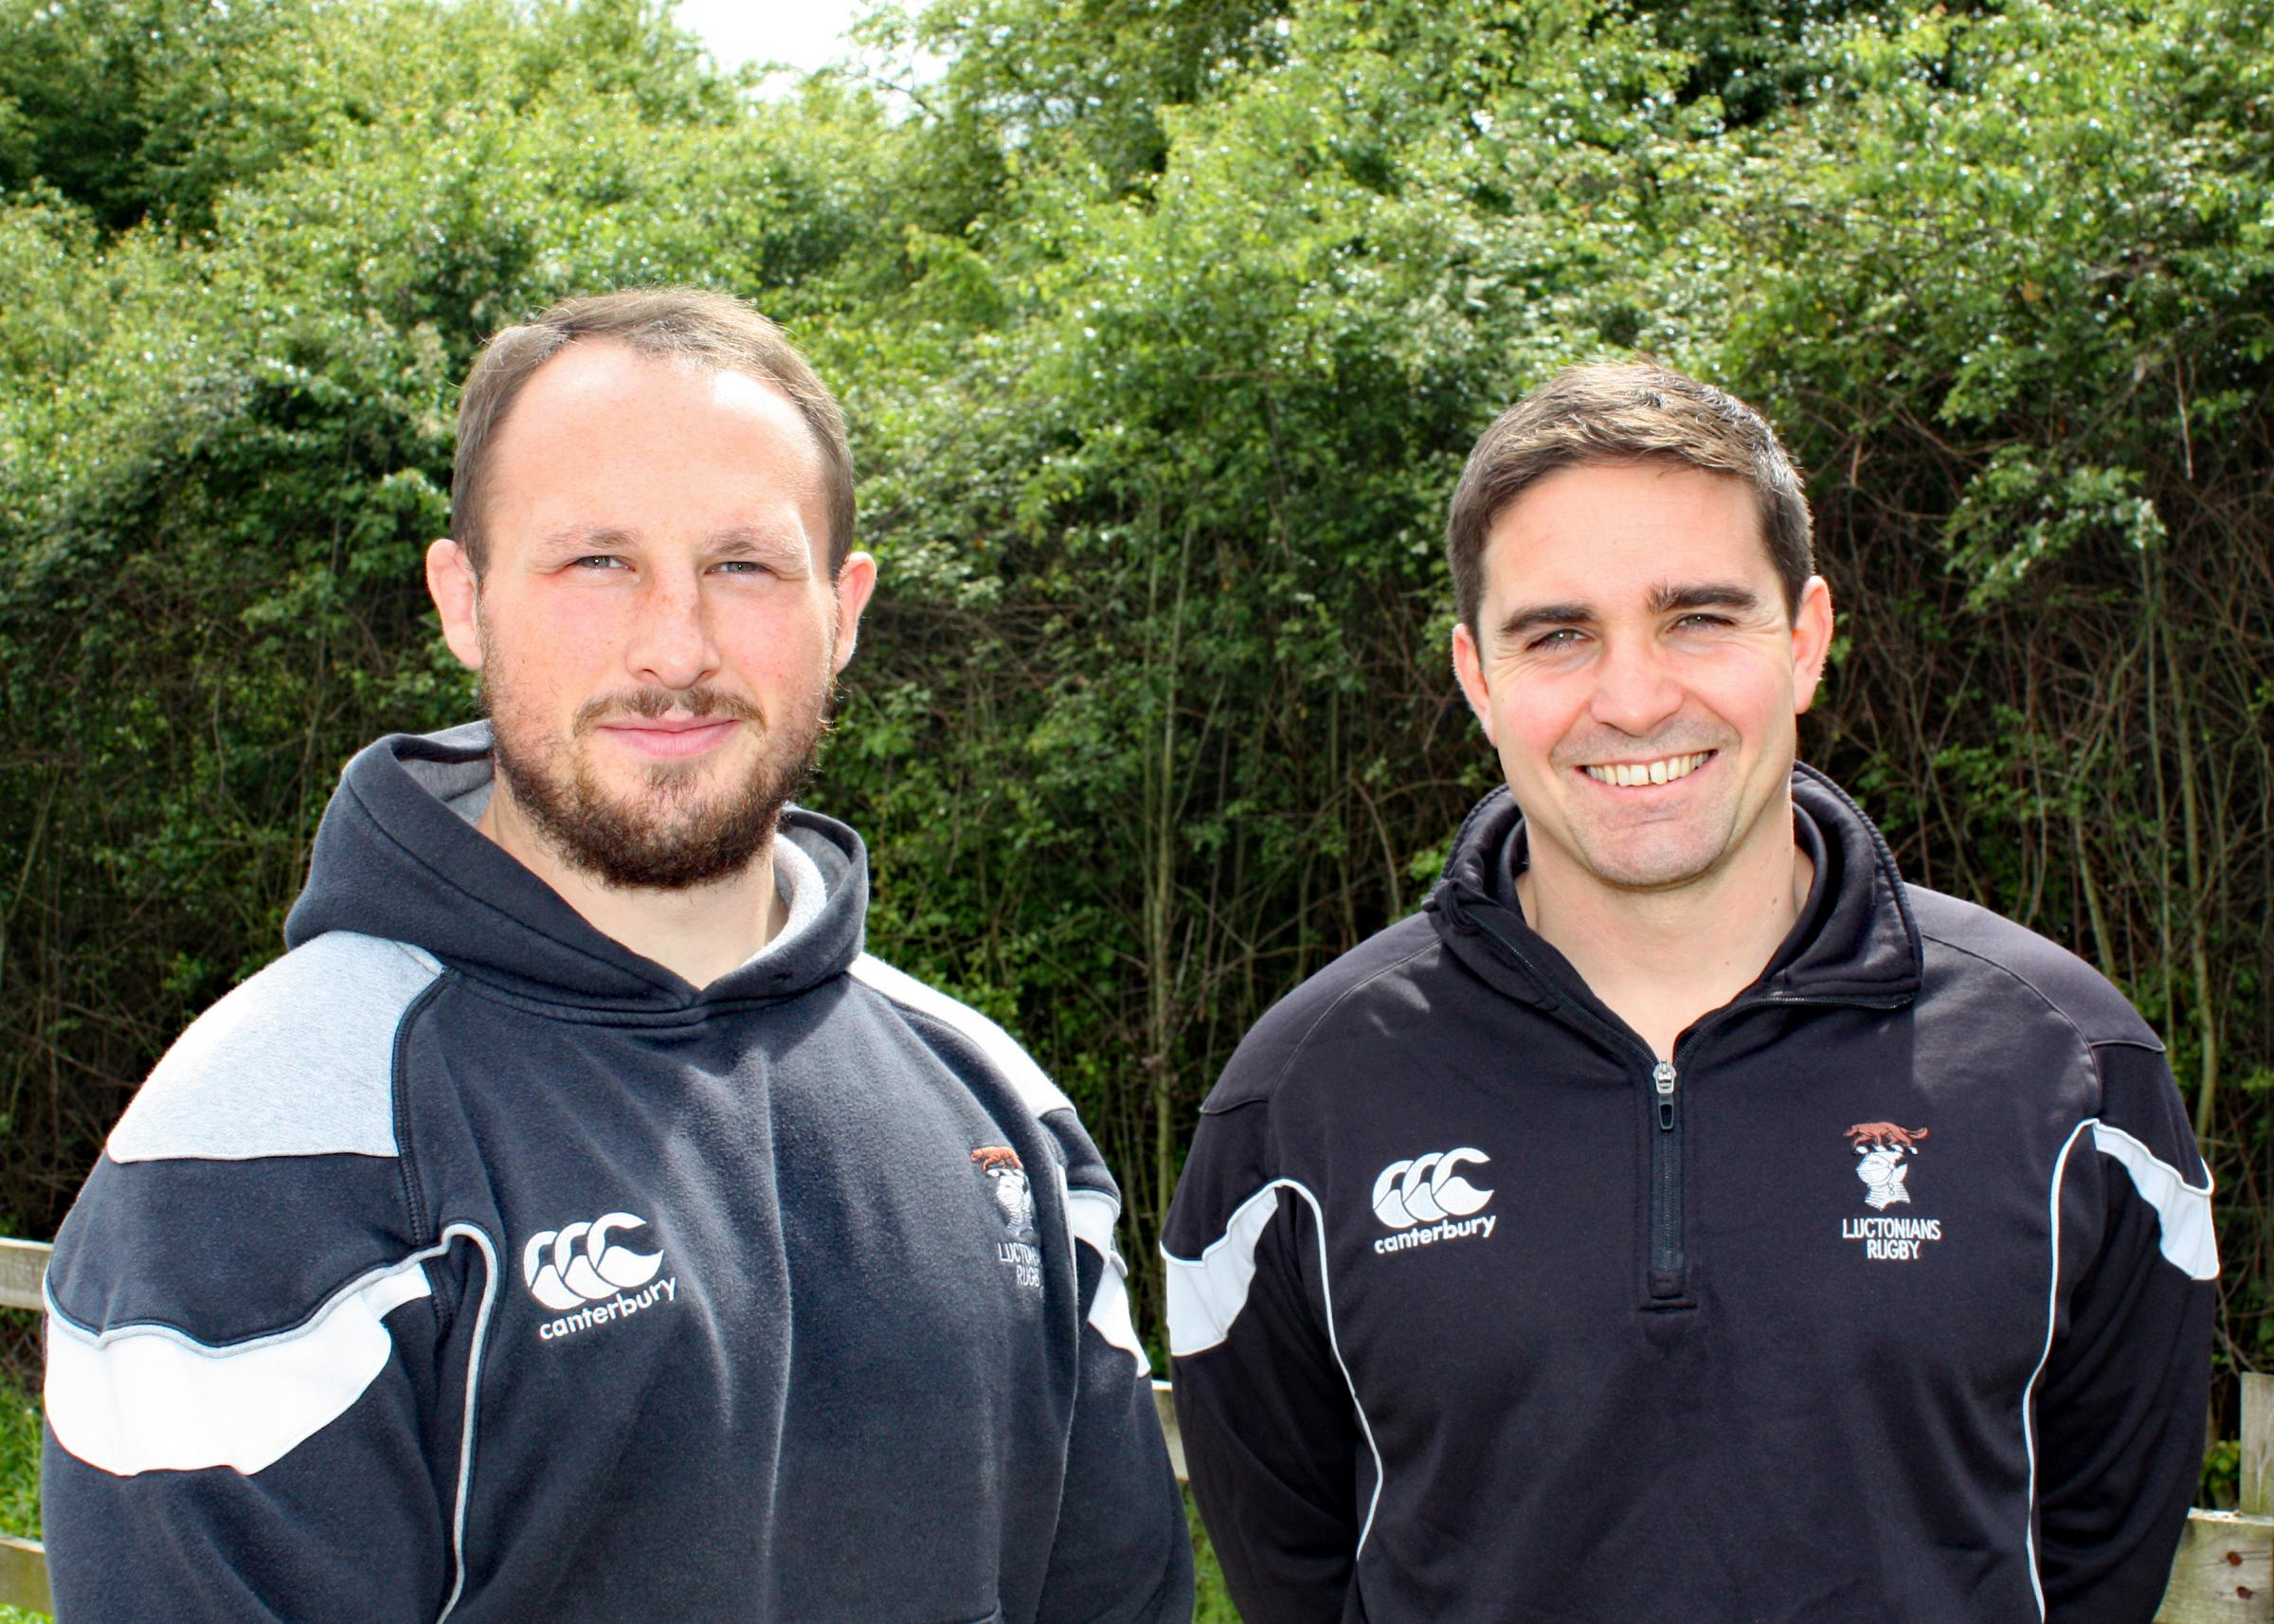 New Luctonians coaches Mike Hill and Ryan Watkins